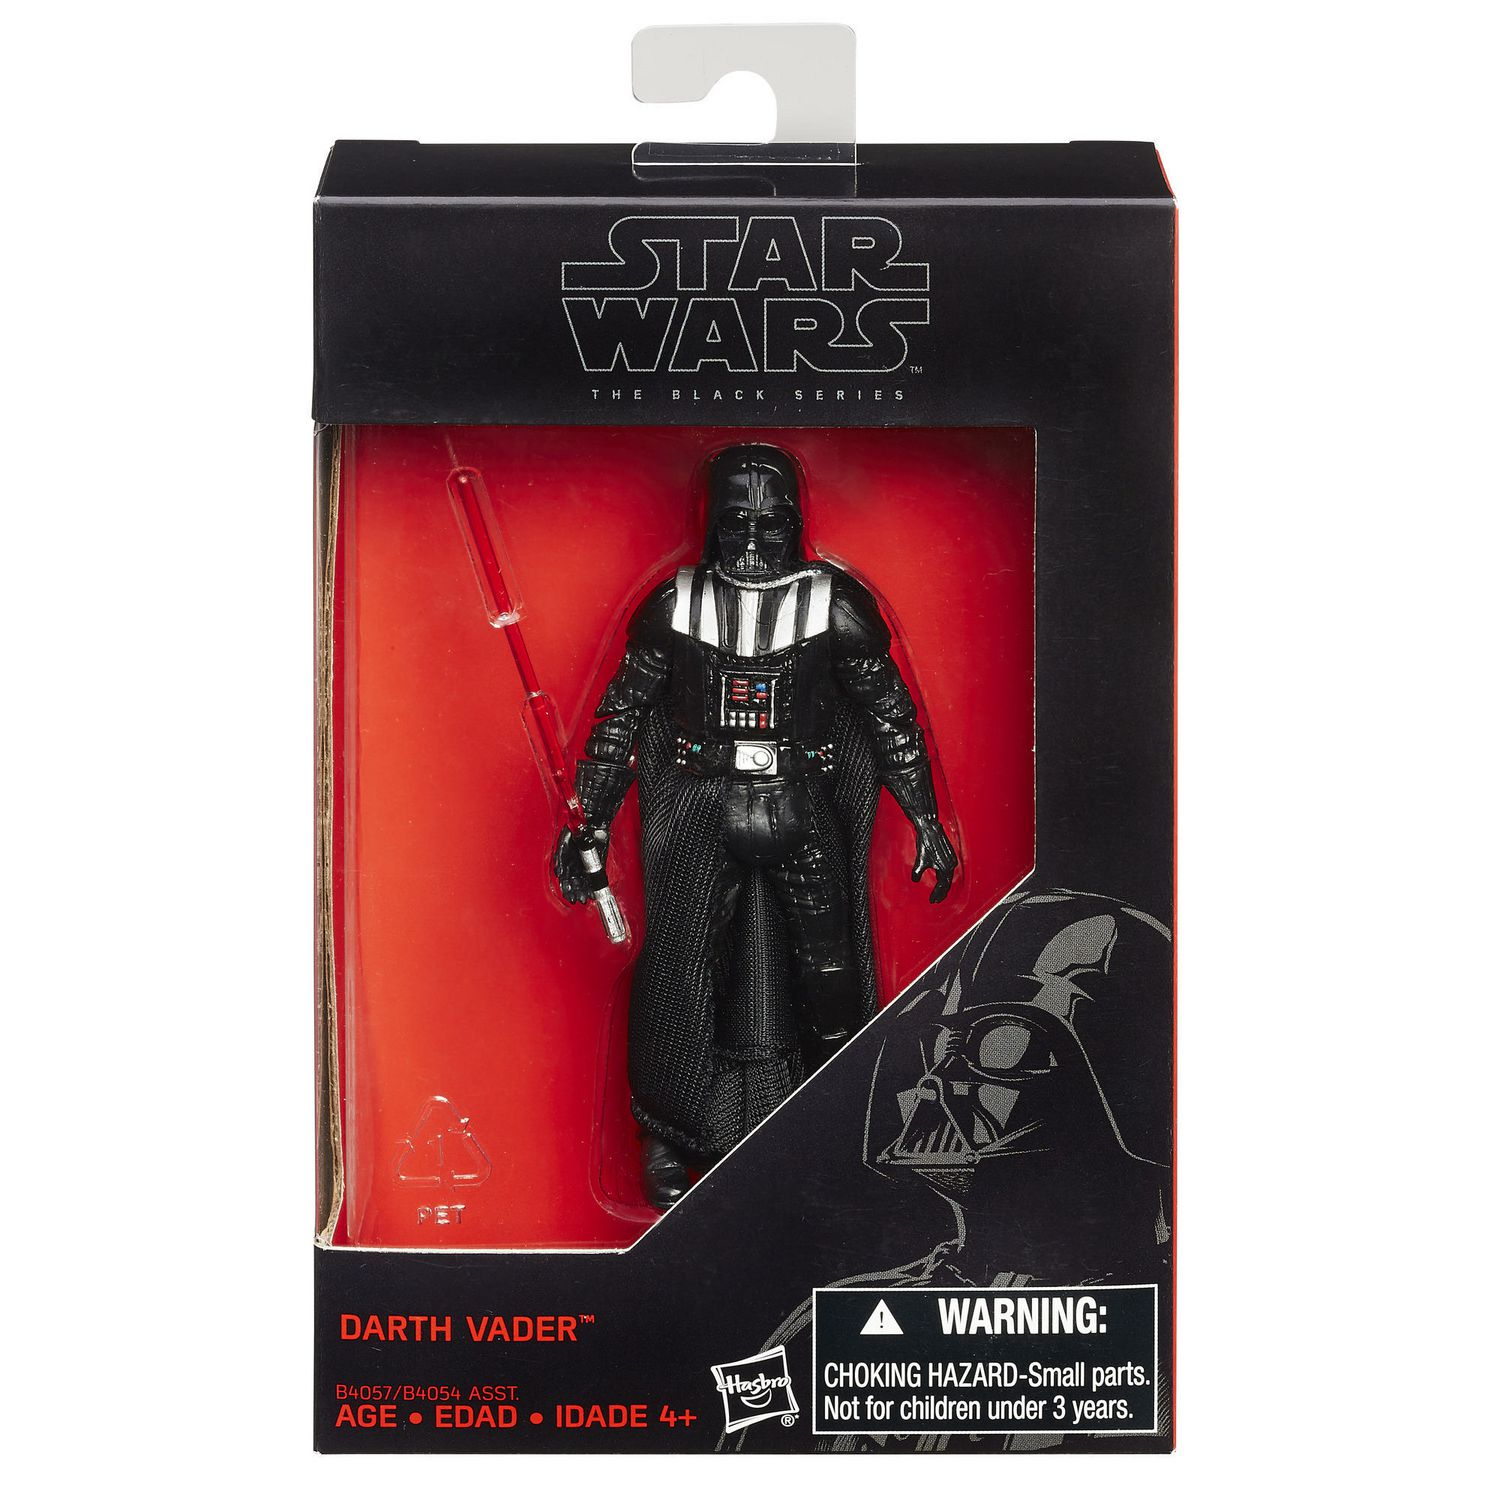 Star Wars The Black Series 3 75 Quot Darth Vader Action Figure